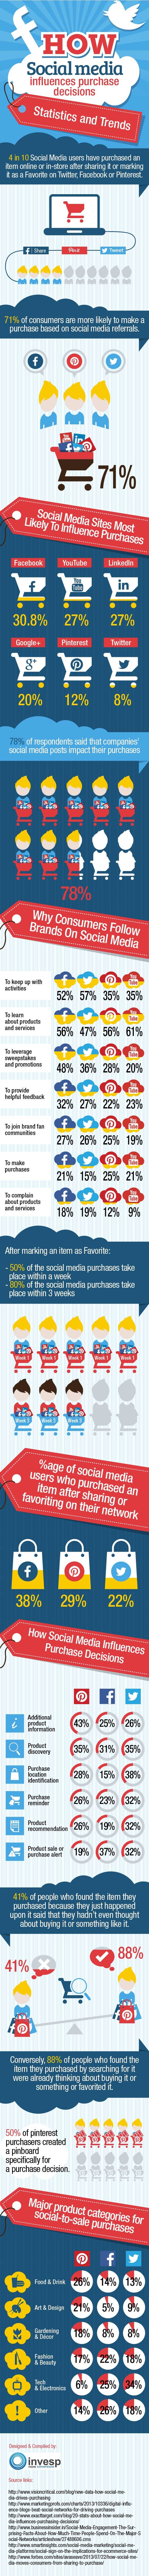 social-media-purchase-decisions.jpg (580×10016)